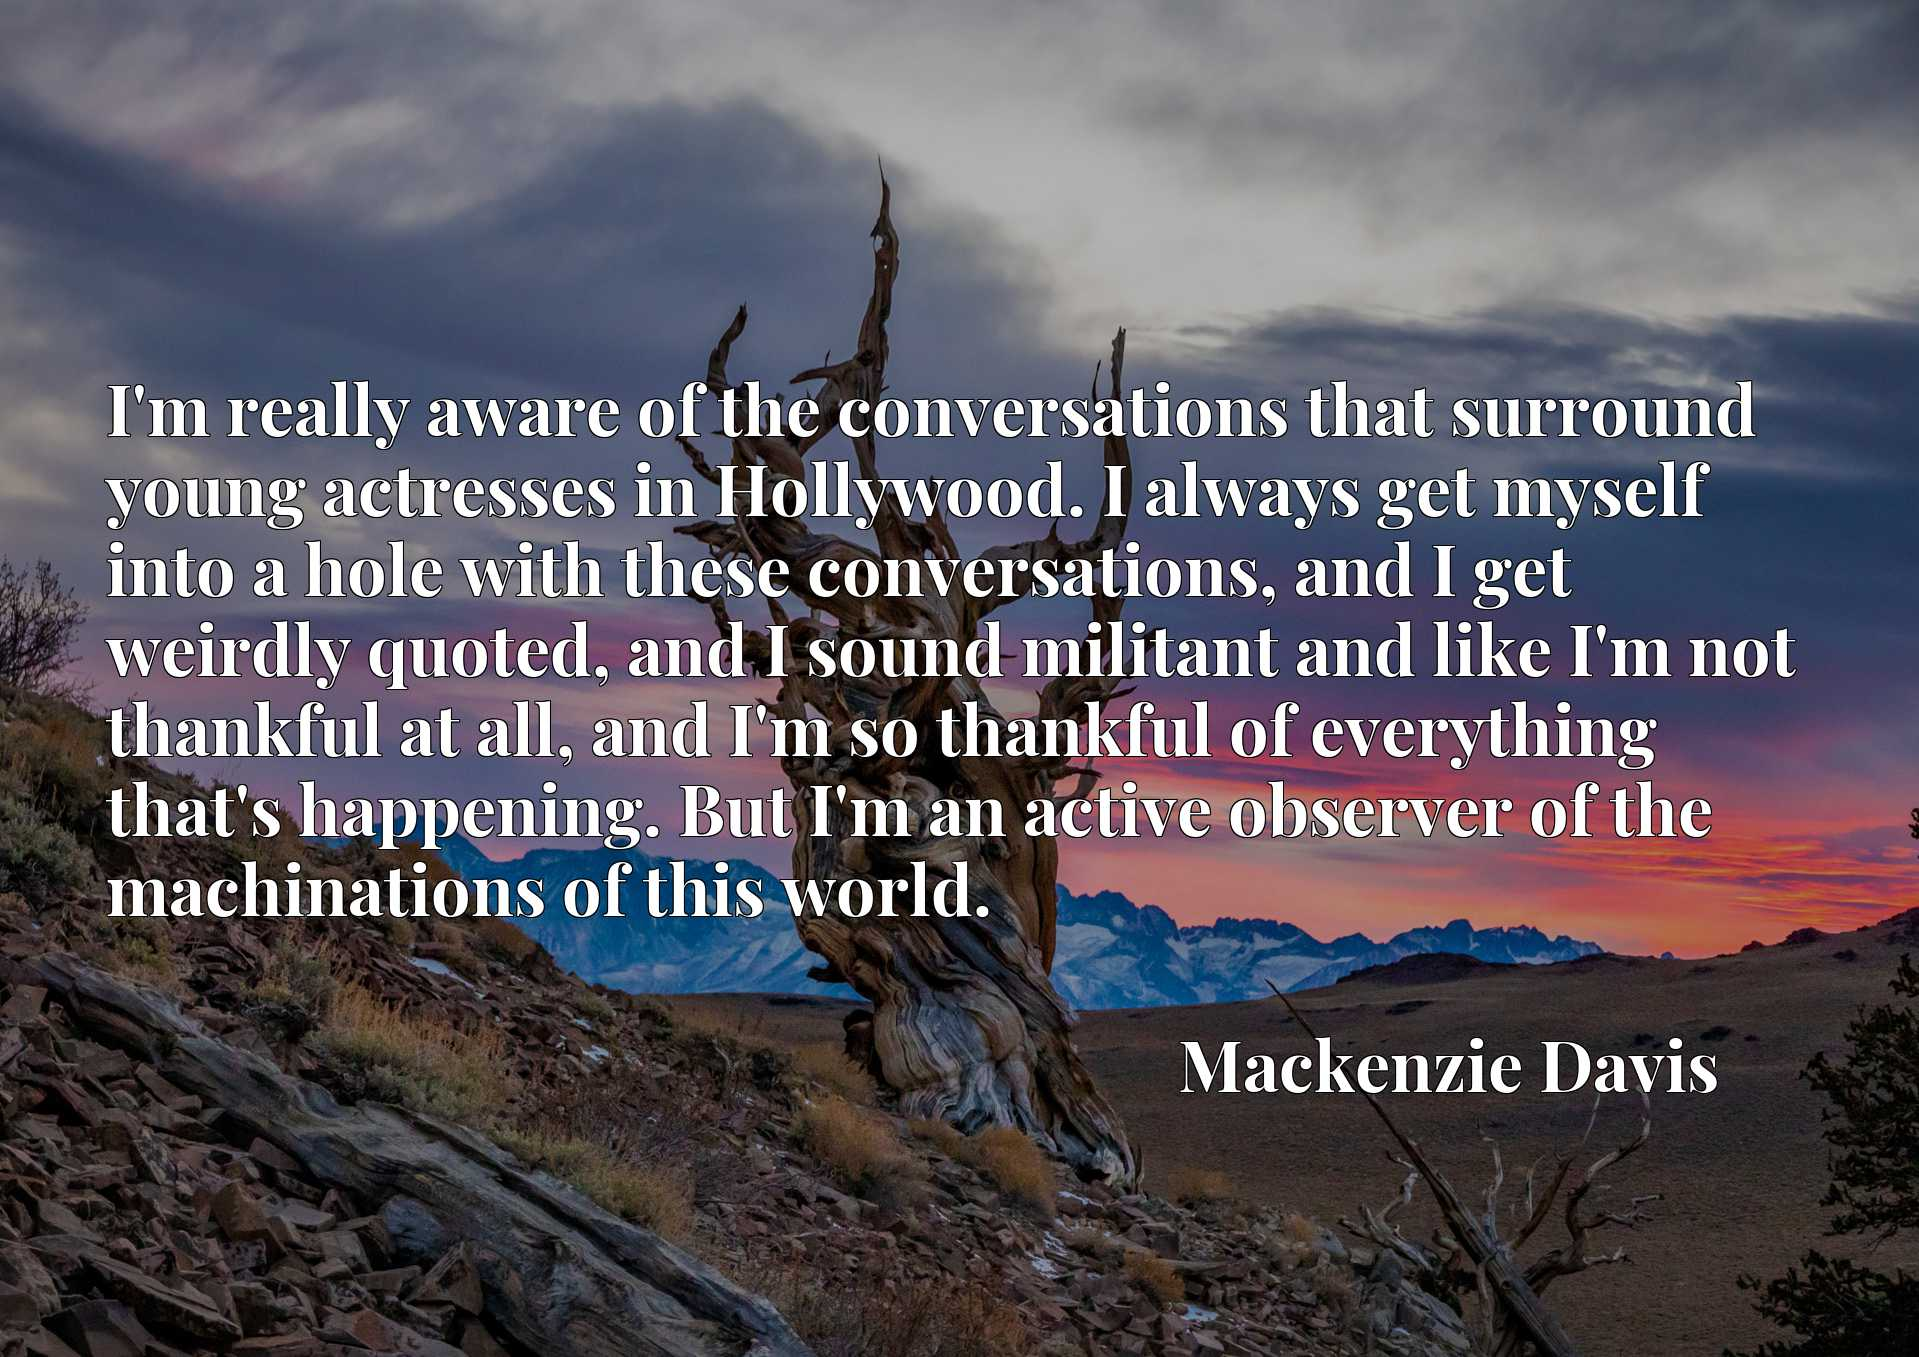 I'm really aware of the conversations that surround young actresses in Hollywood. I always get myself into a hole with these conversations, and I get weirdly quoted, and I sound militant and like I'm not thankful at all, and I'm so thankful of everything that's happening. But I'm an active observer of the machinations of this world.